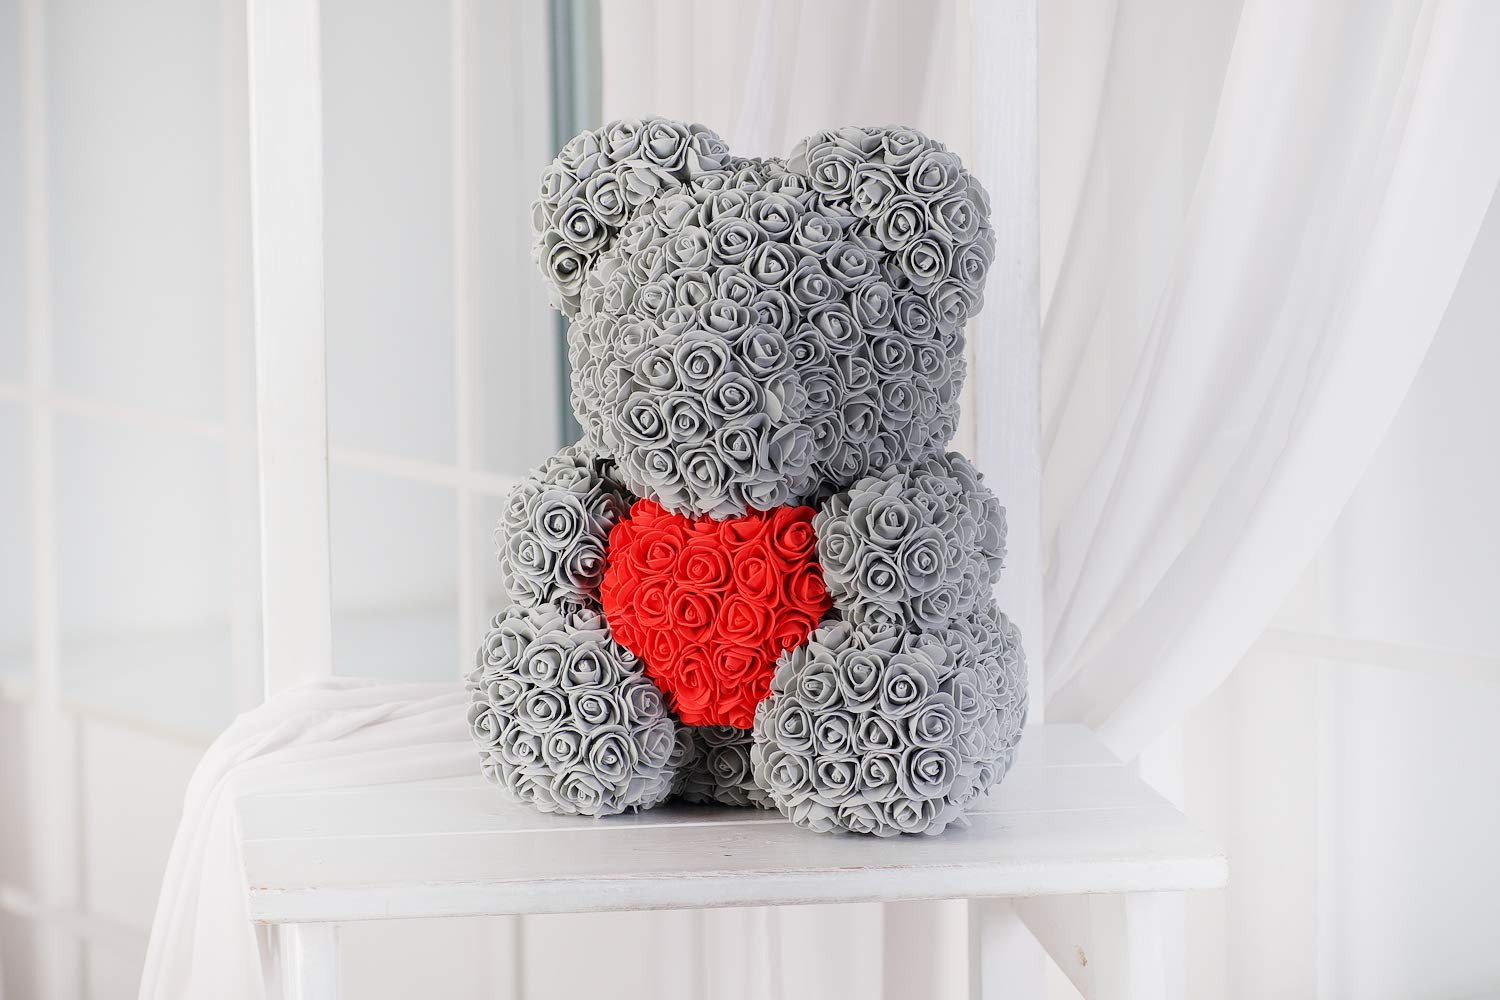 Winning a Heart - Granting Rose bears As Valentines Gifts